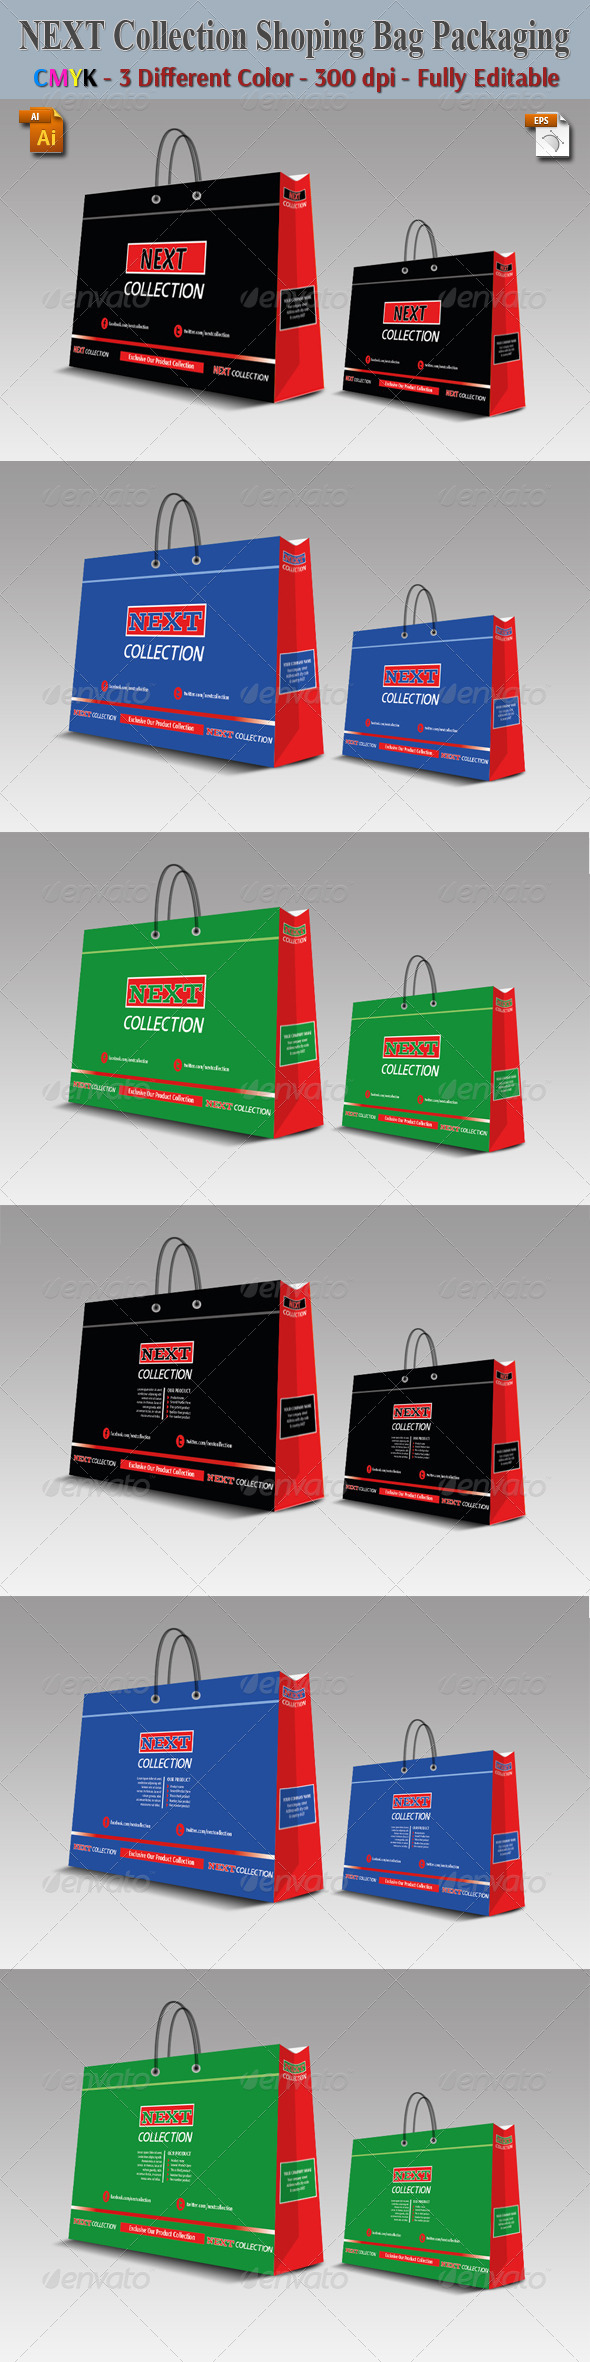 Spacial Collection Shoping Bag Packaging